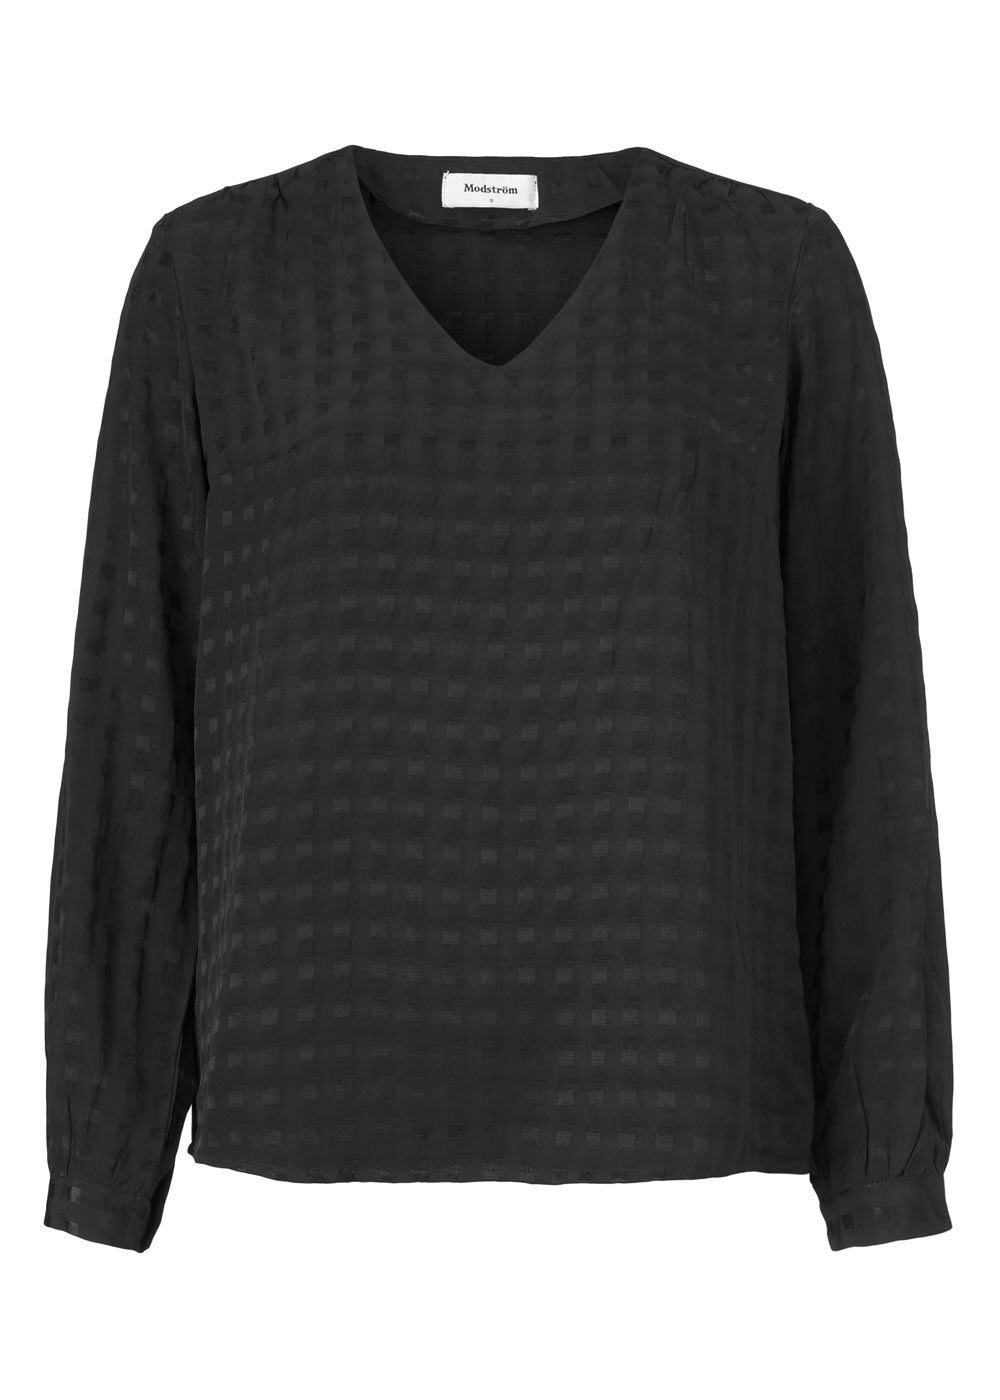 Modström Sullivan Top Black